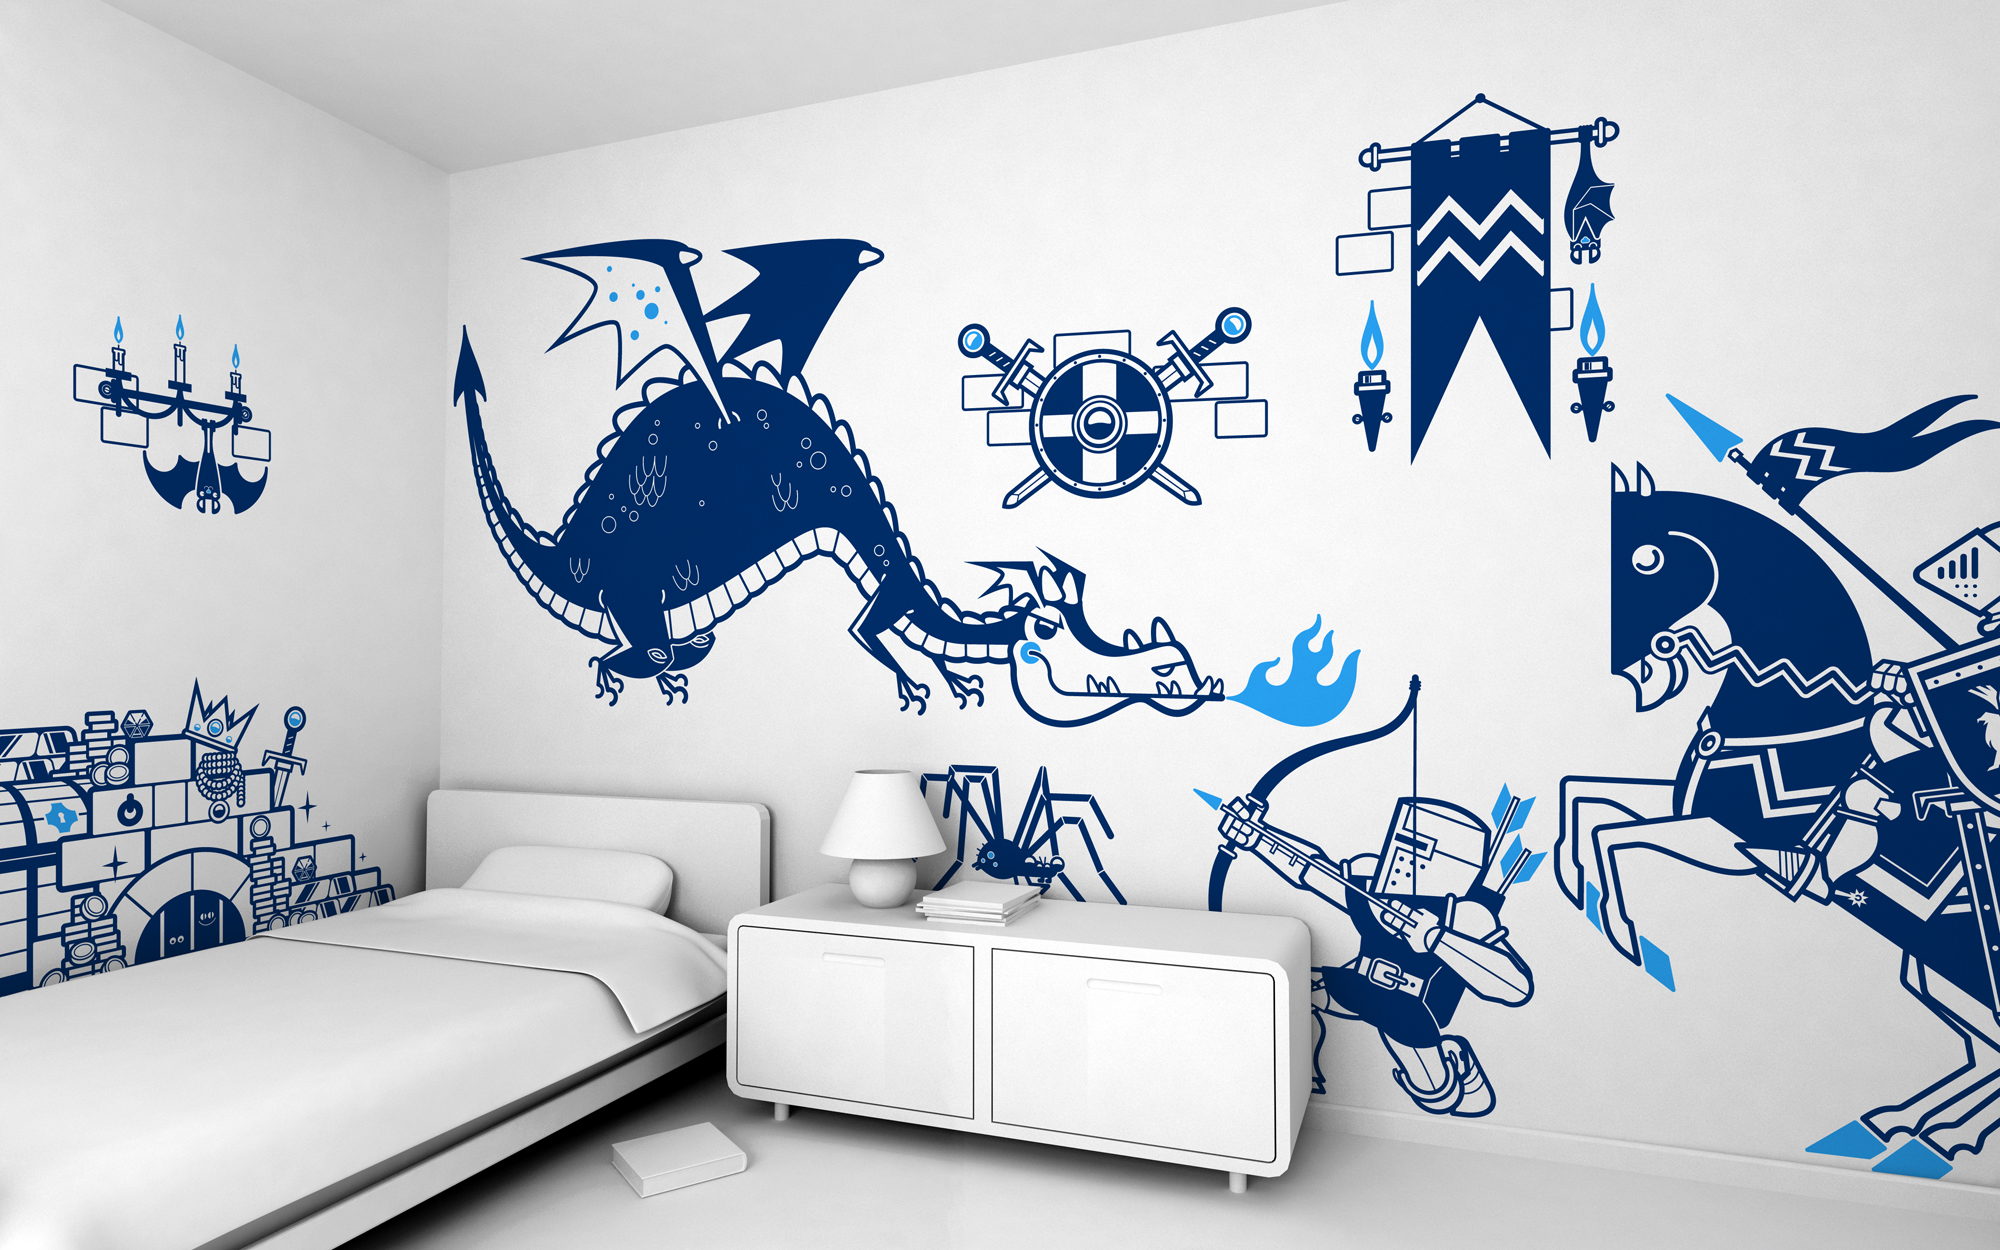 Wall decor stickers for nursery home design stickers for baby nursery or kids room qview full size amipublicfo Gallery